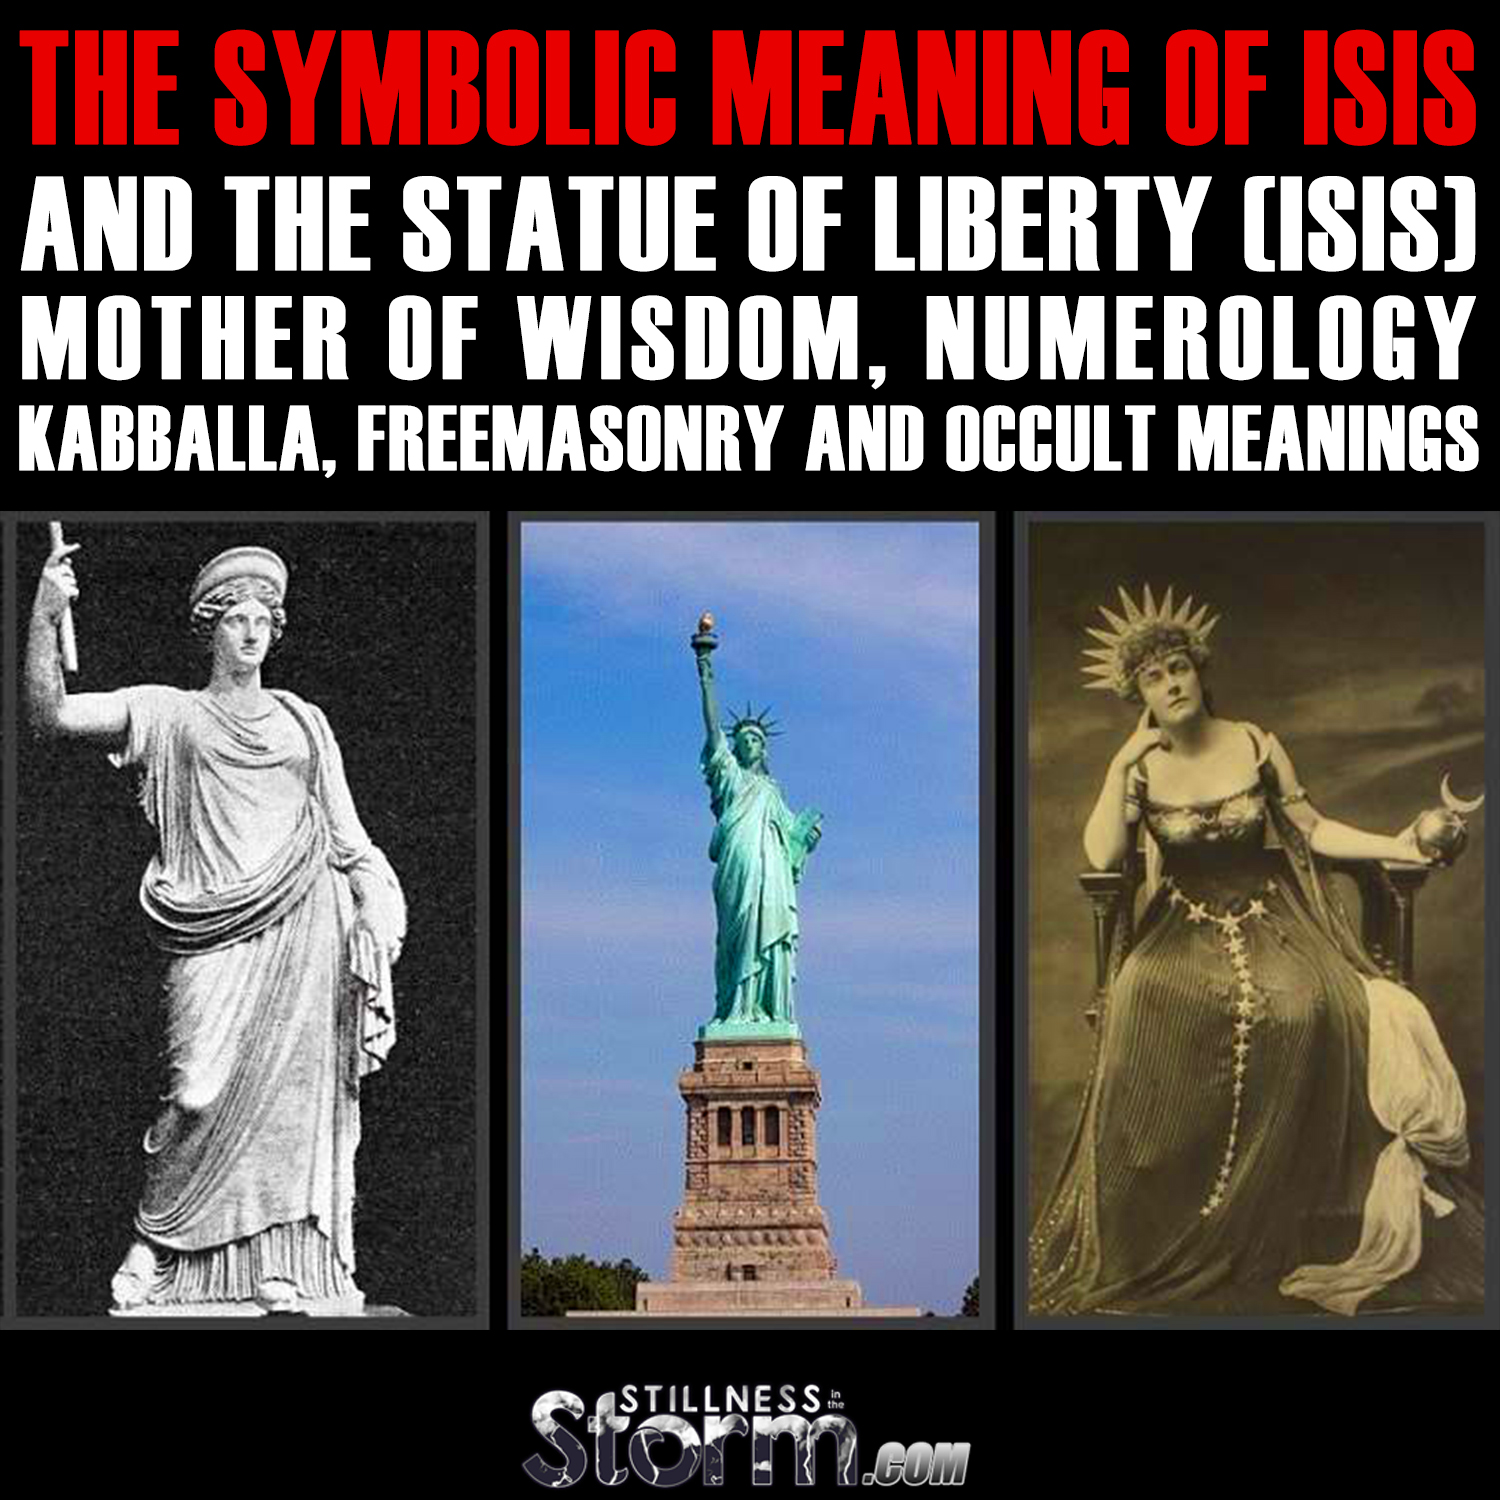 isis terrorist symbol meaning